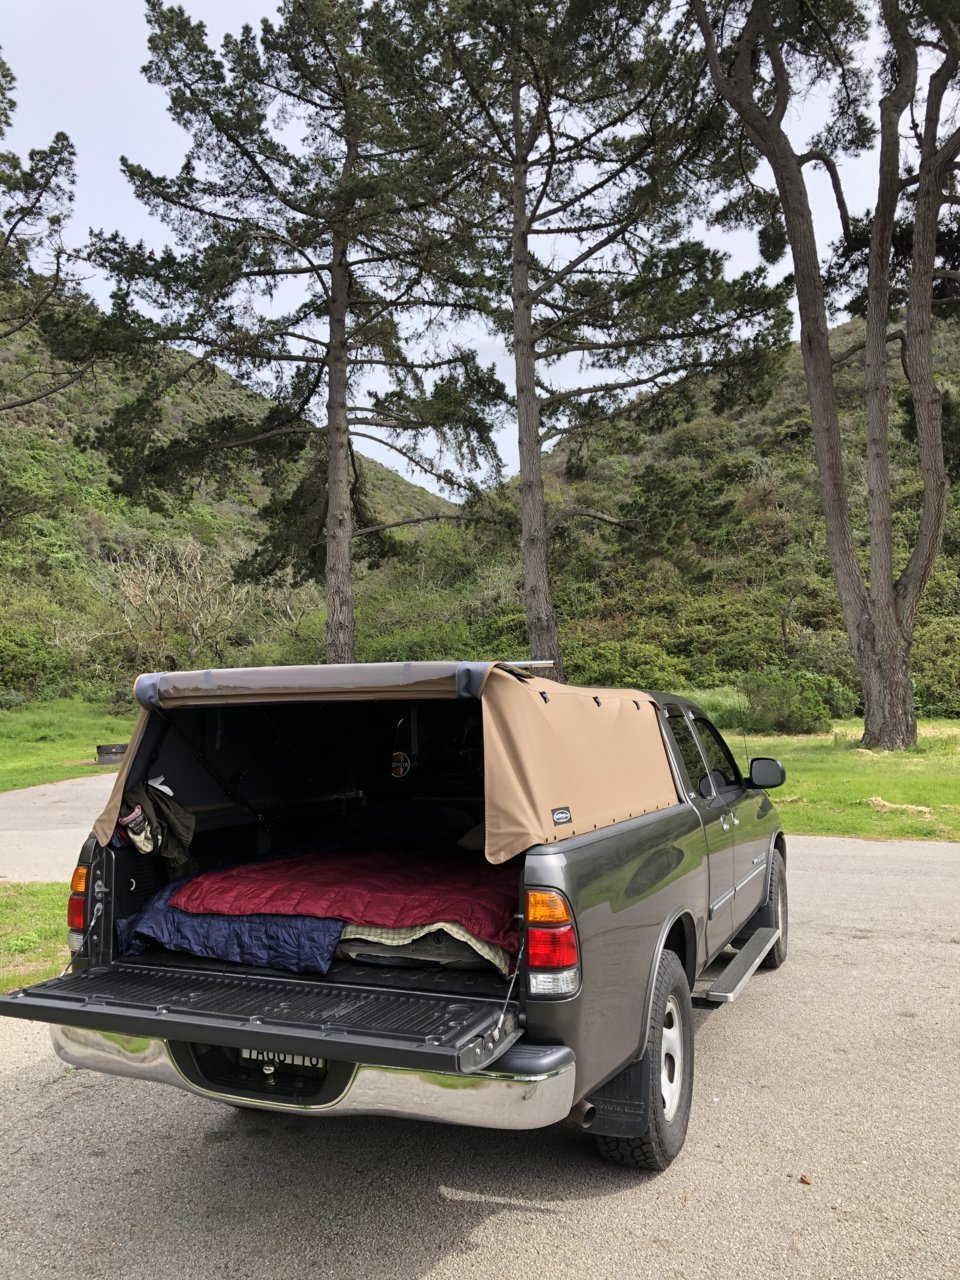 Camper Shells Topper Soft Or Hard For Camping Toyota Tundra Forum